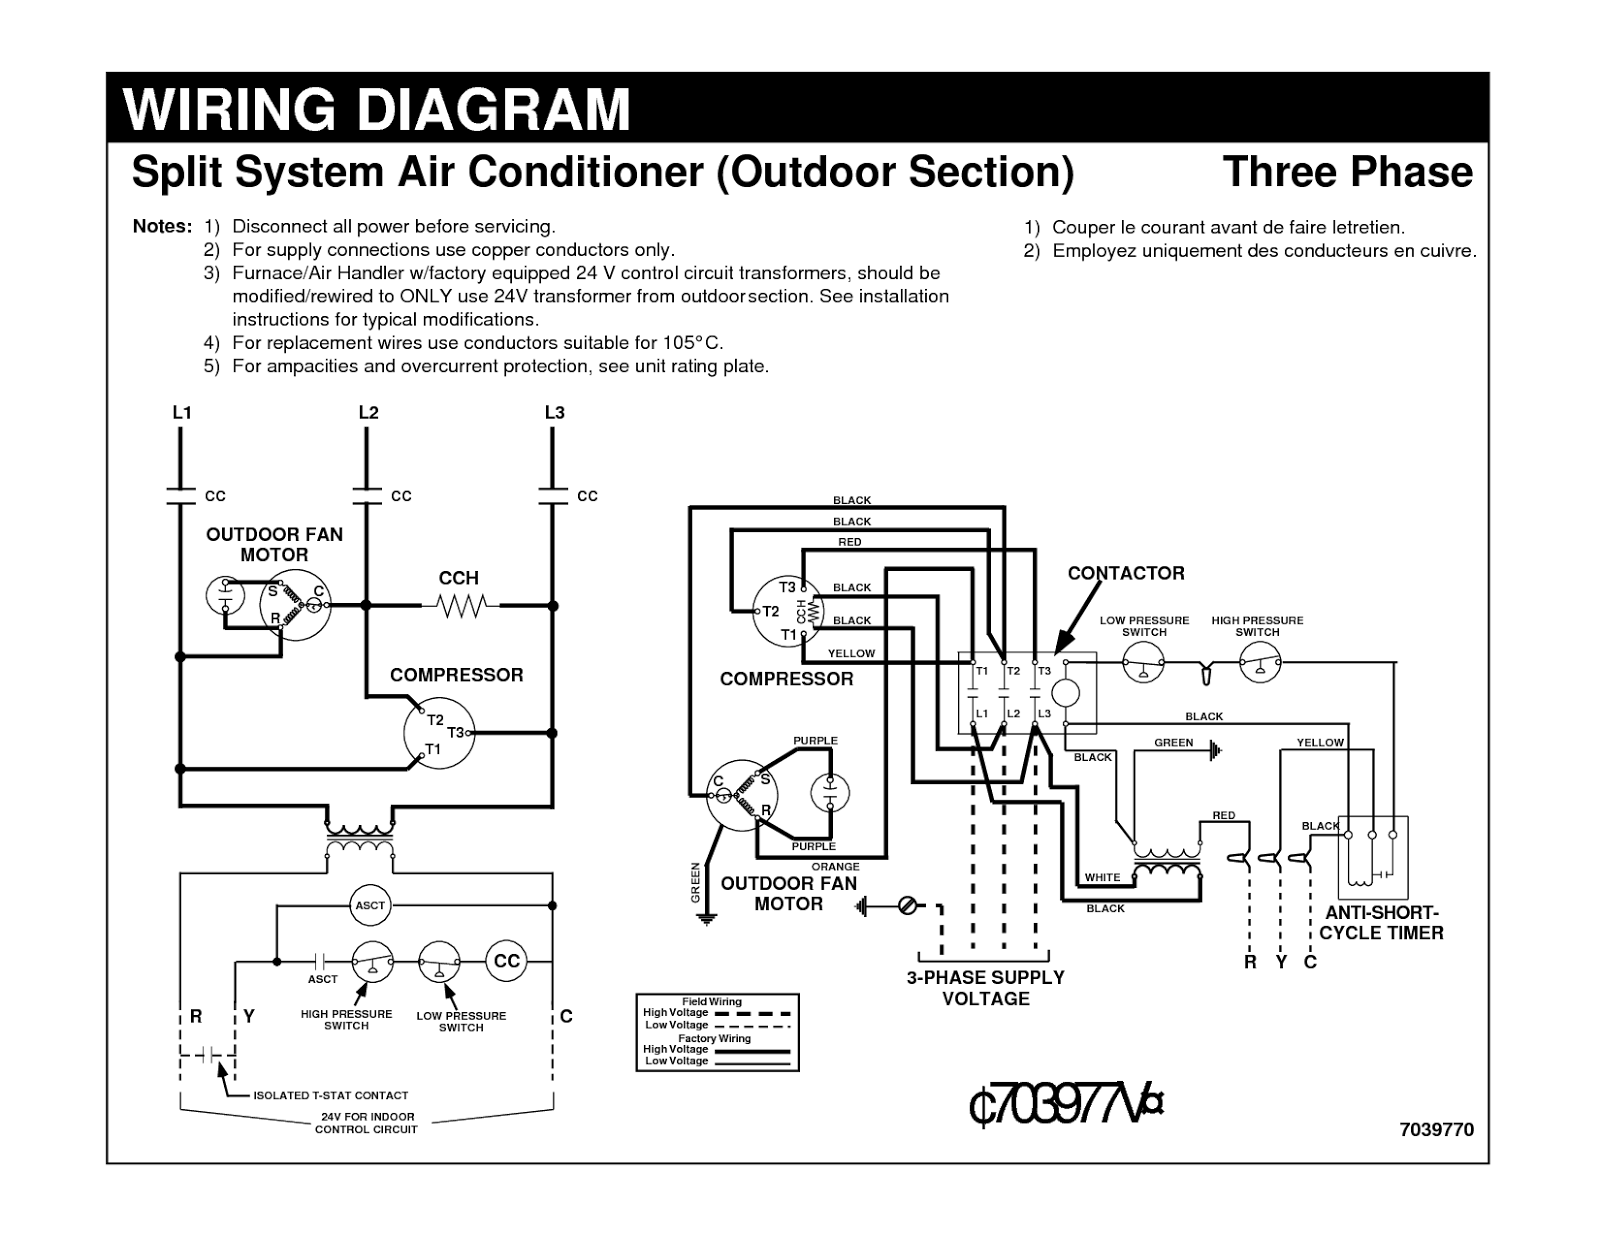 wiring+diagram+in+the+user+manual electrical wiring diagrams for air conditioning systems part one central air conditioner wiring diagram at bakdesigns.co